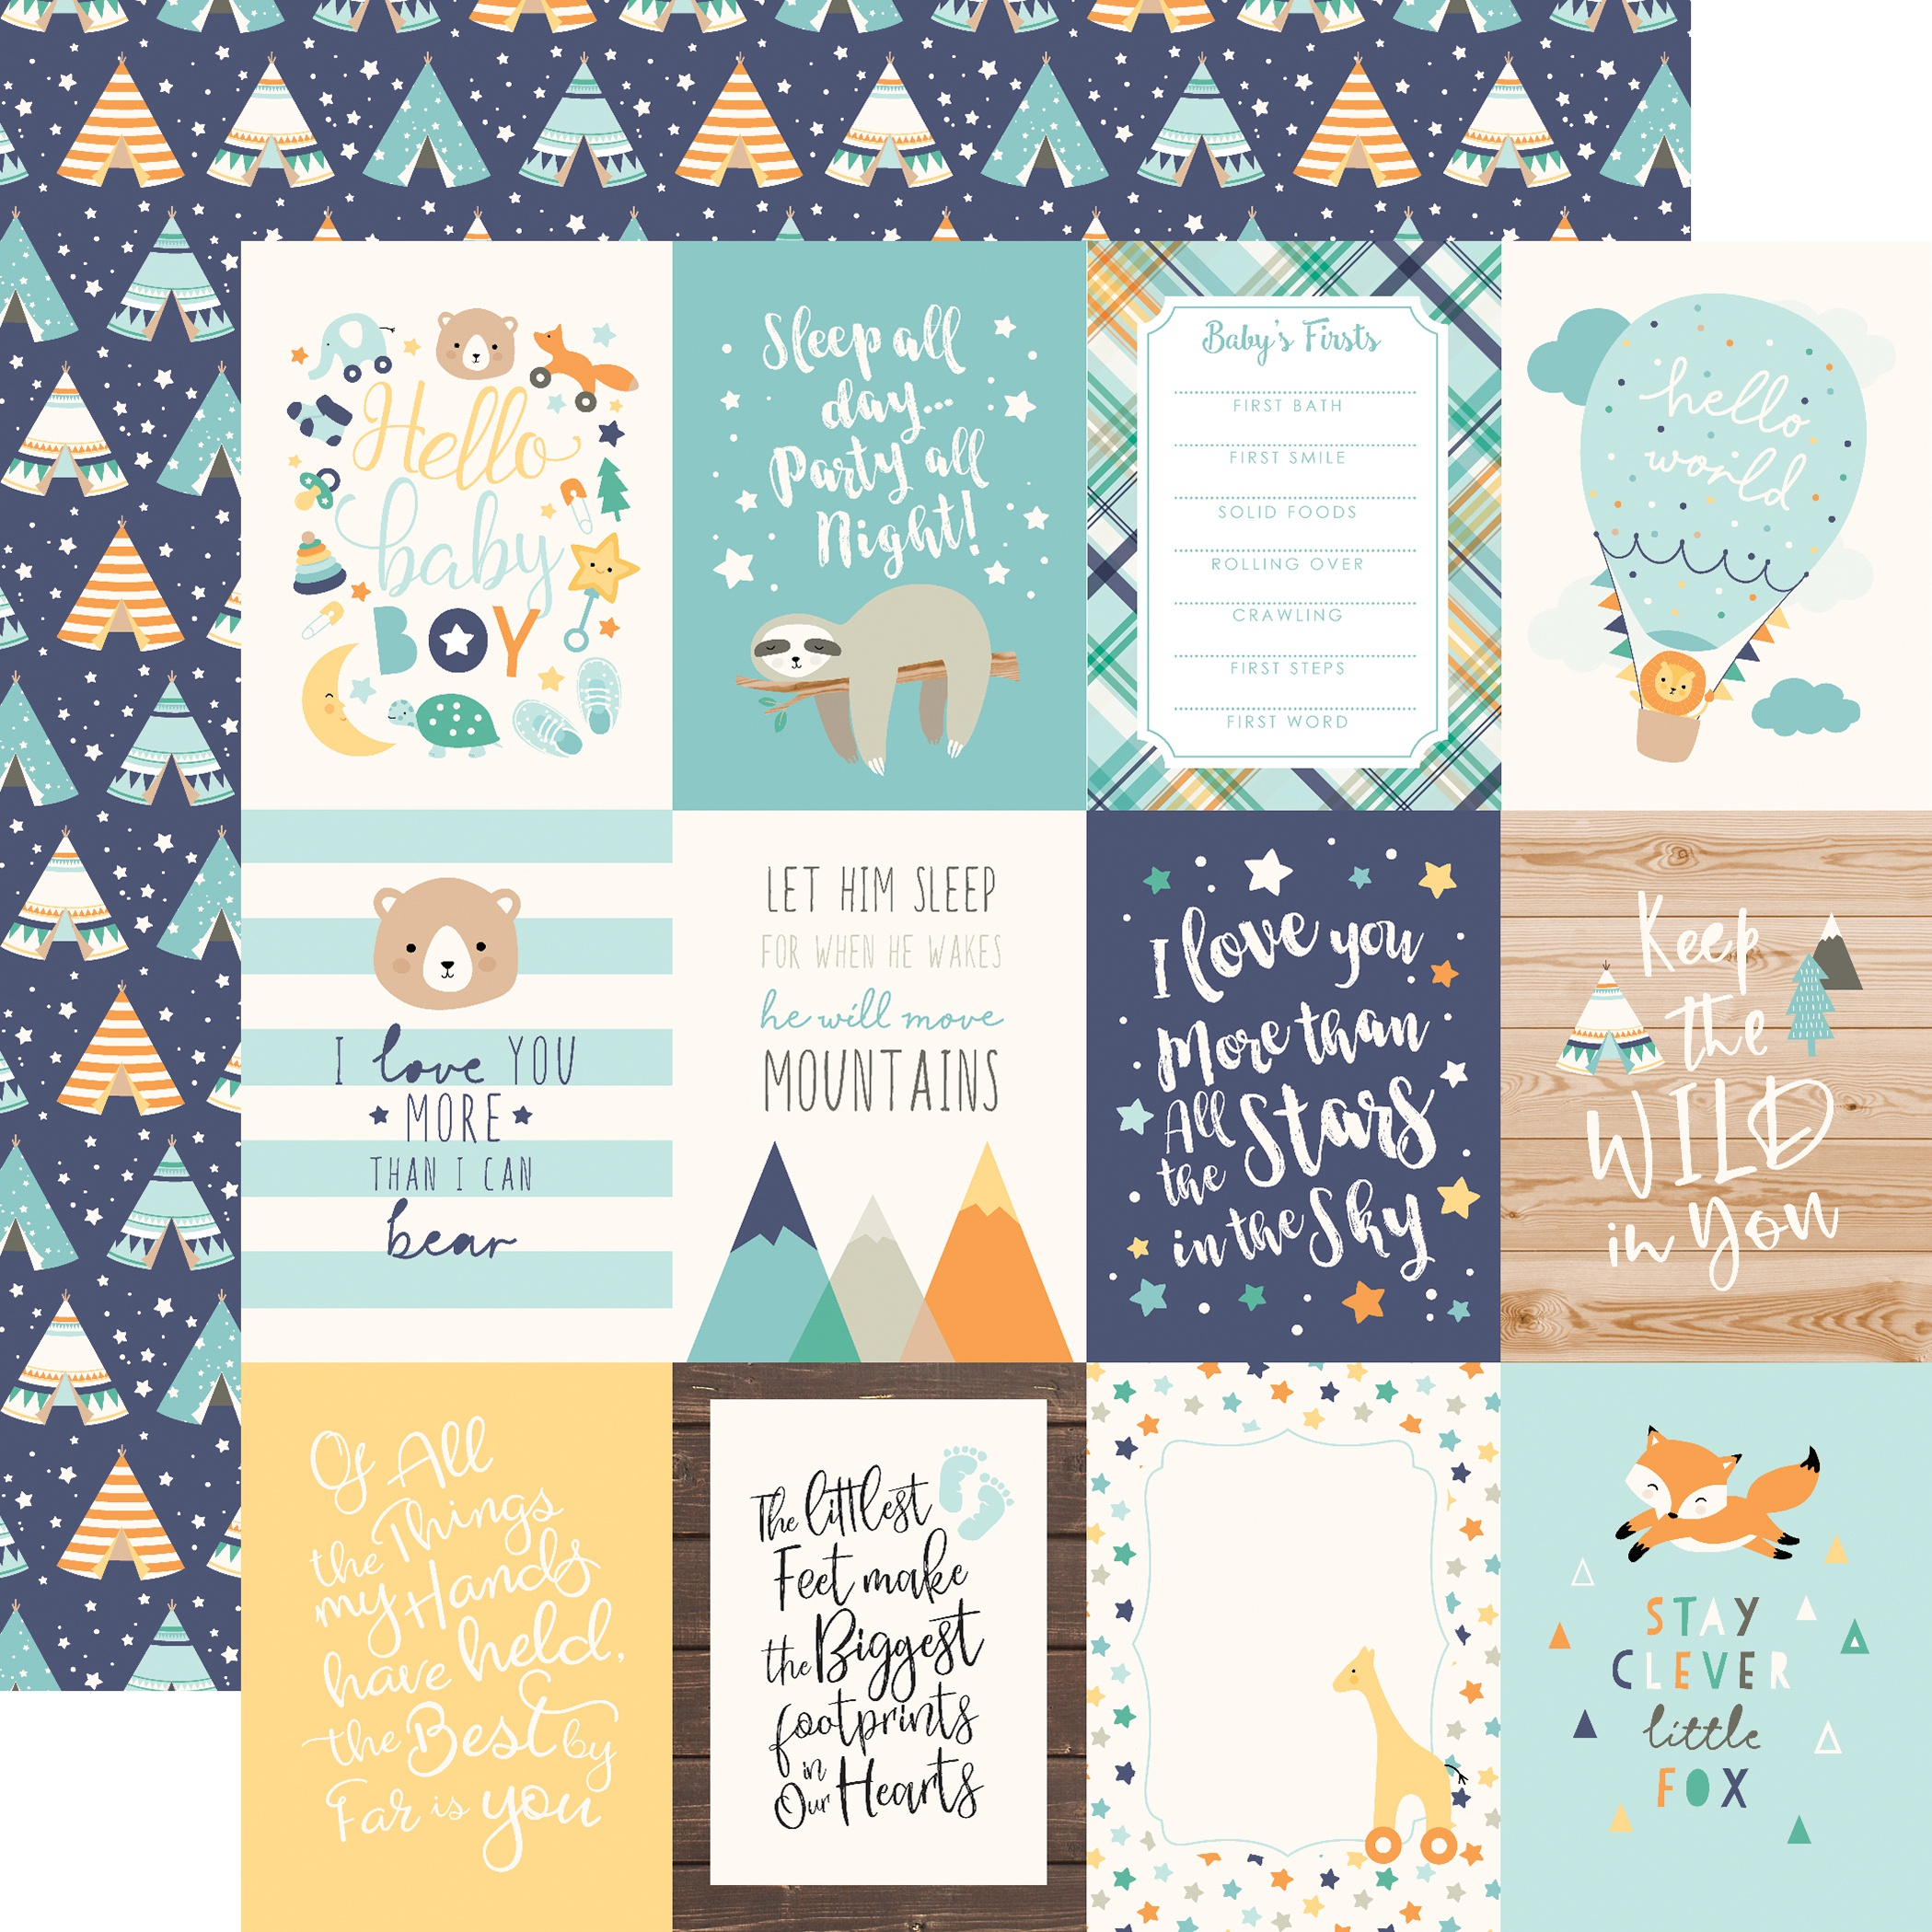 Echo Park Hello Baby - 3x4 Journaling Cards